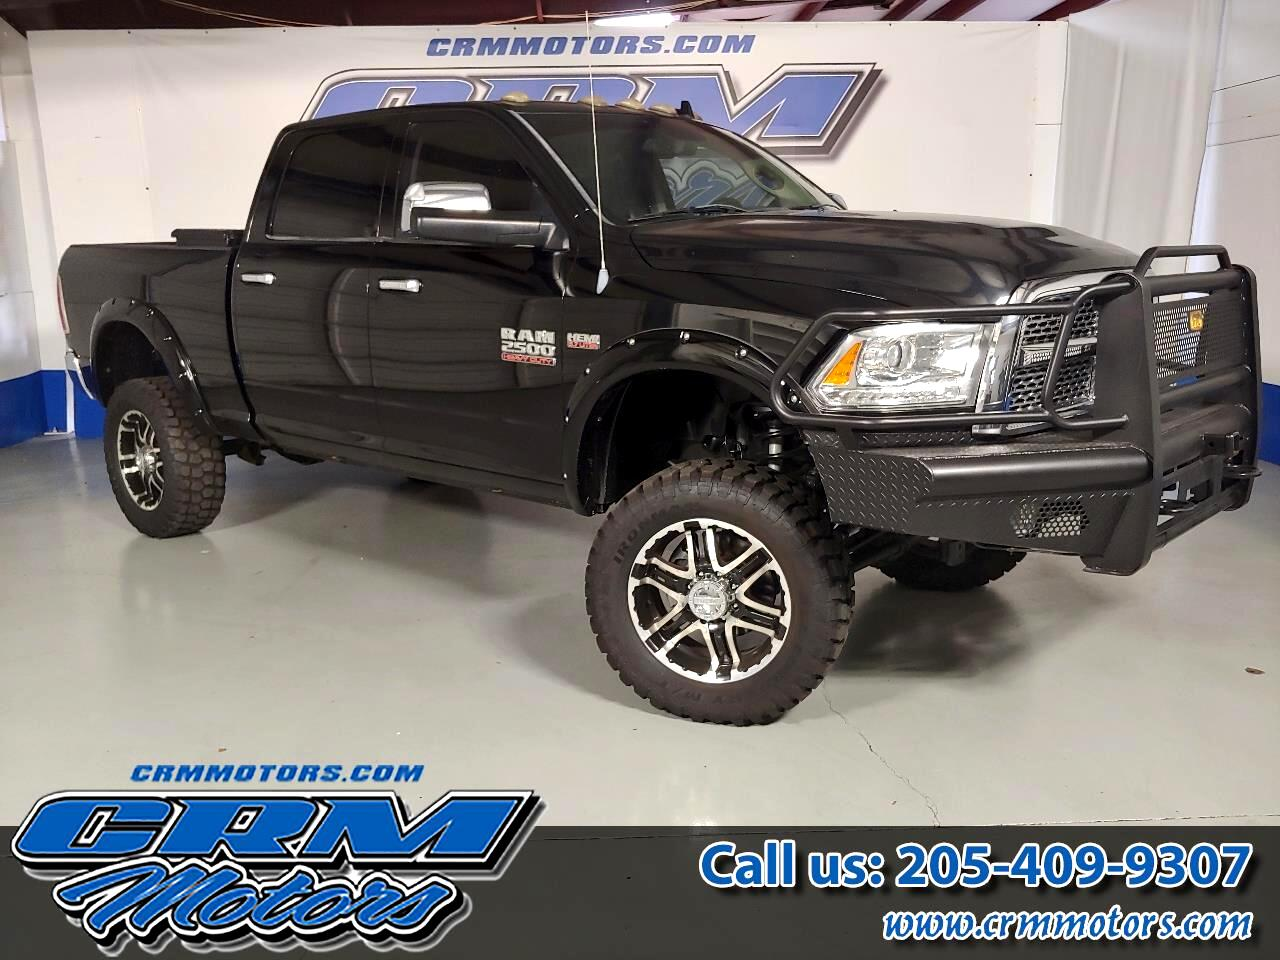 2013 RAM 2500 LARAMIE, MEGA CAB, 4X4, CUSTOM LIFT, WHEELS, & TIR